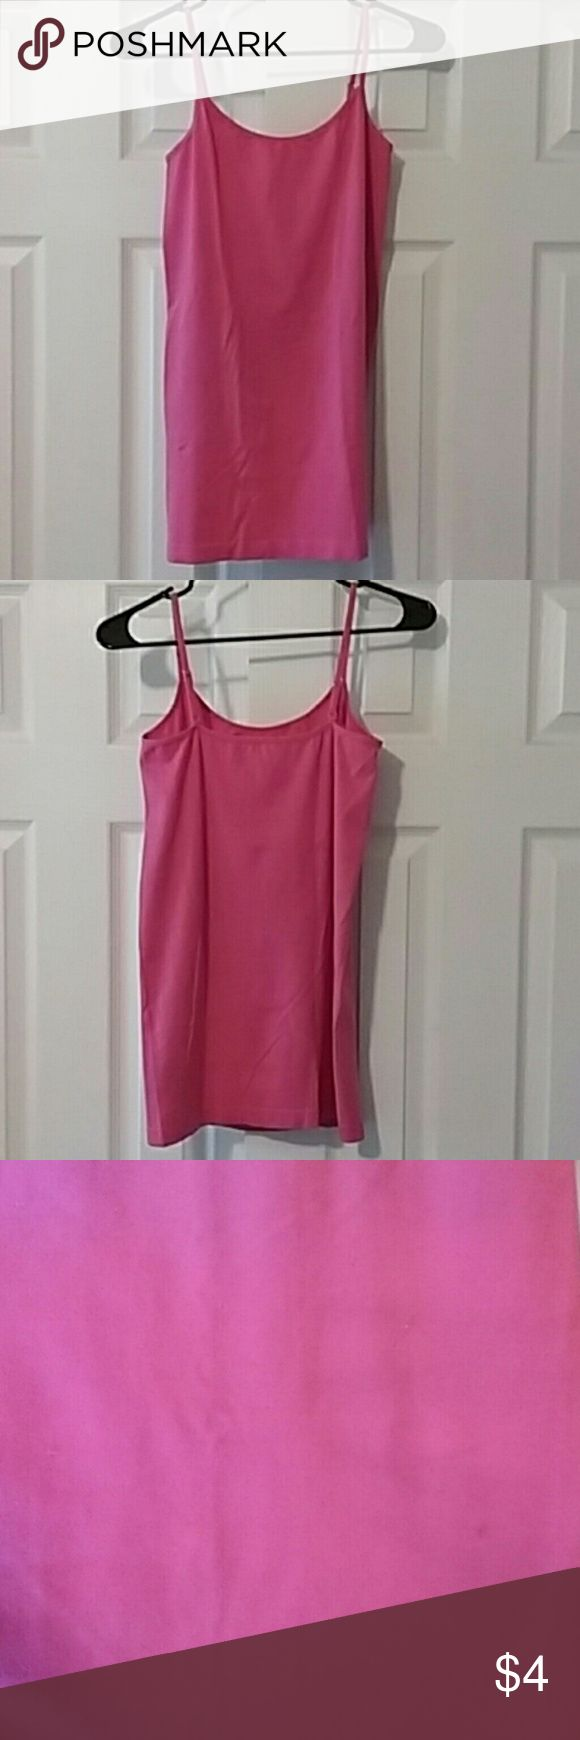 Price to sell!!! Pink Maternity Cami This maternity cami is great for layering! Has a little stain from my maternity dark wash jeans. Took picture to show stain. Other than that it's in great condition! Tops Camisoles